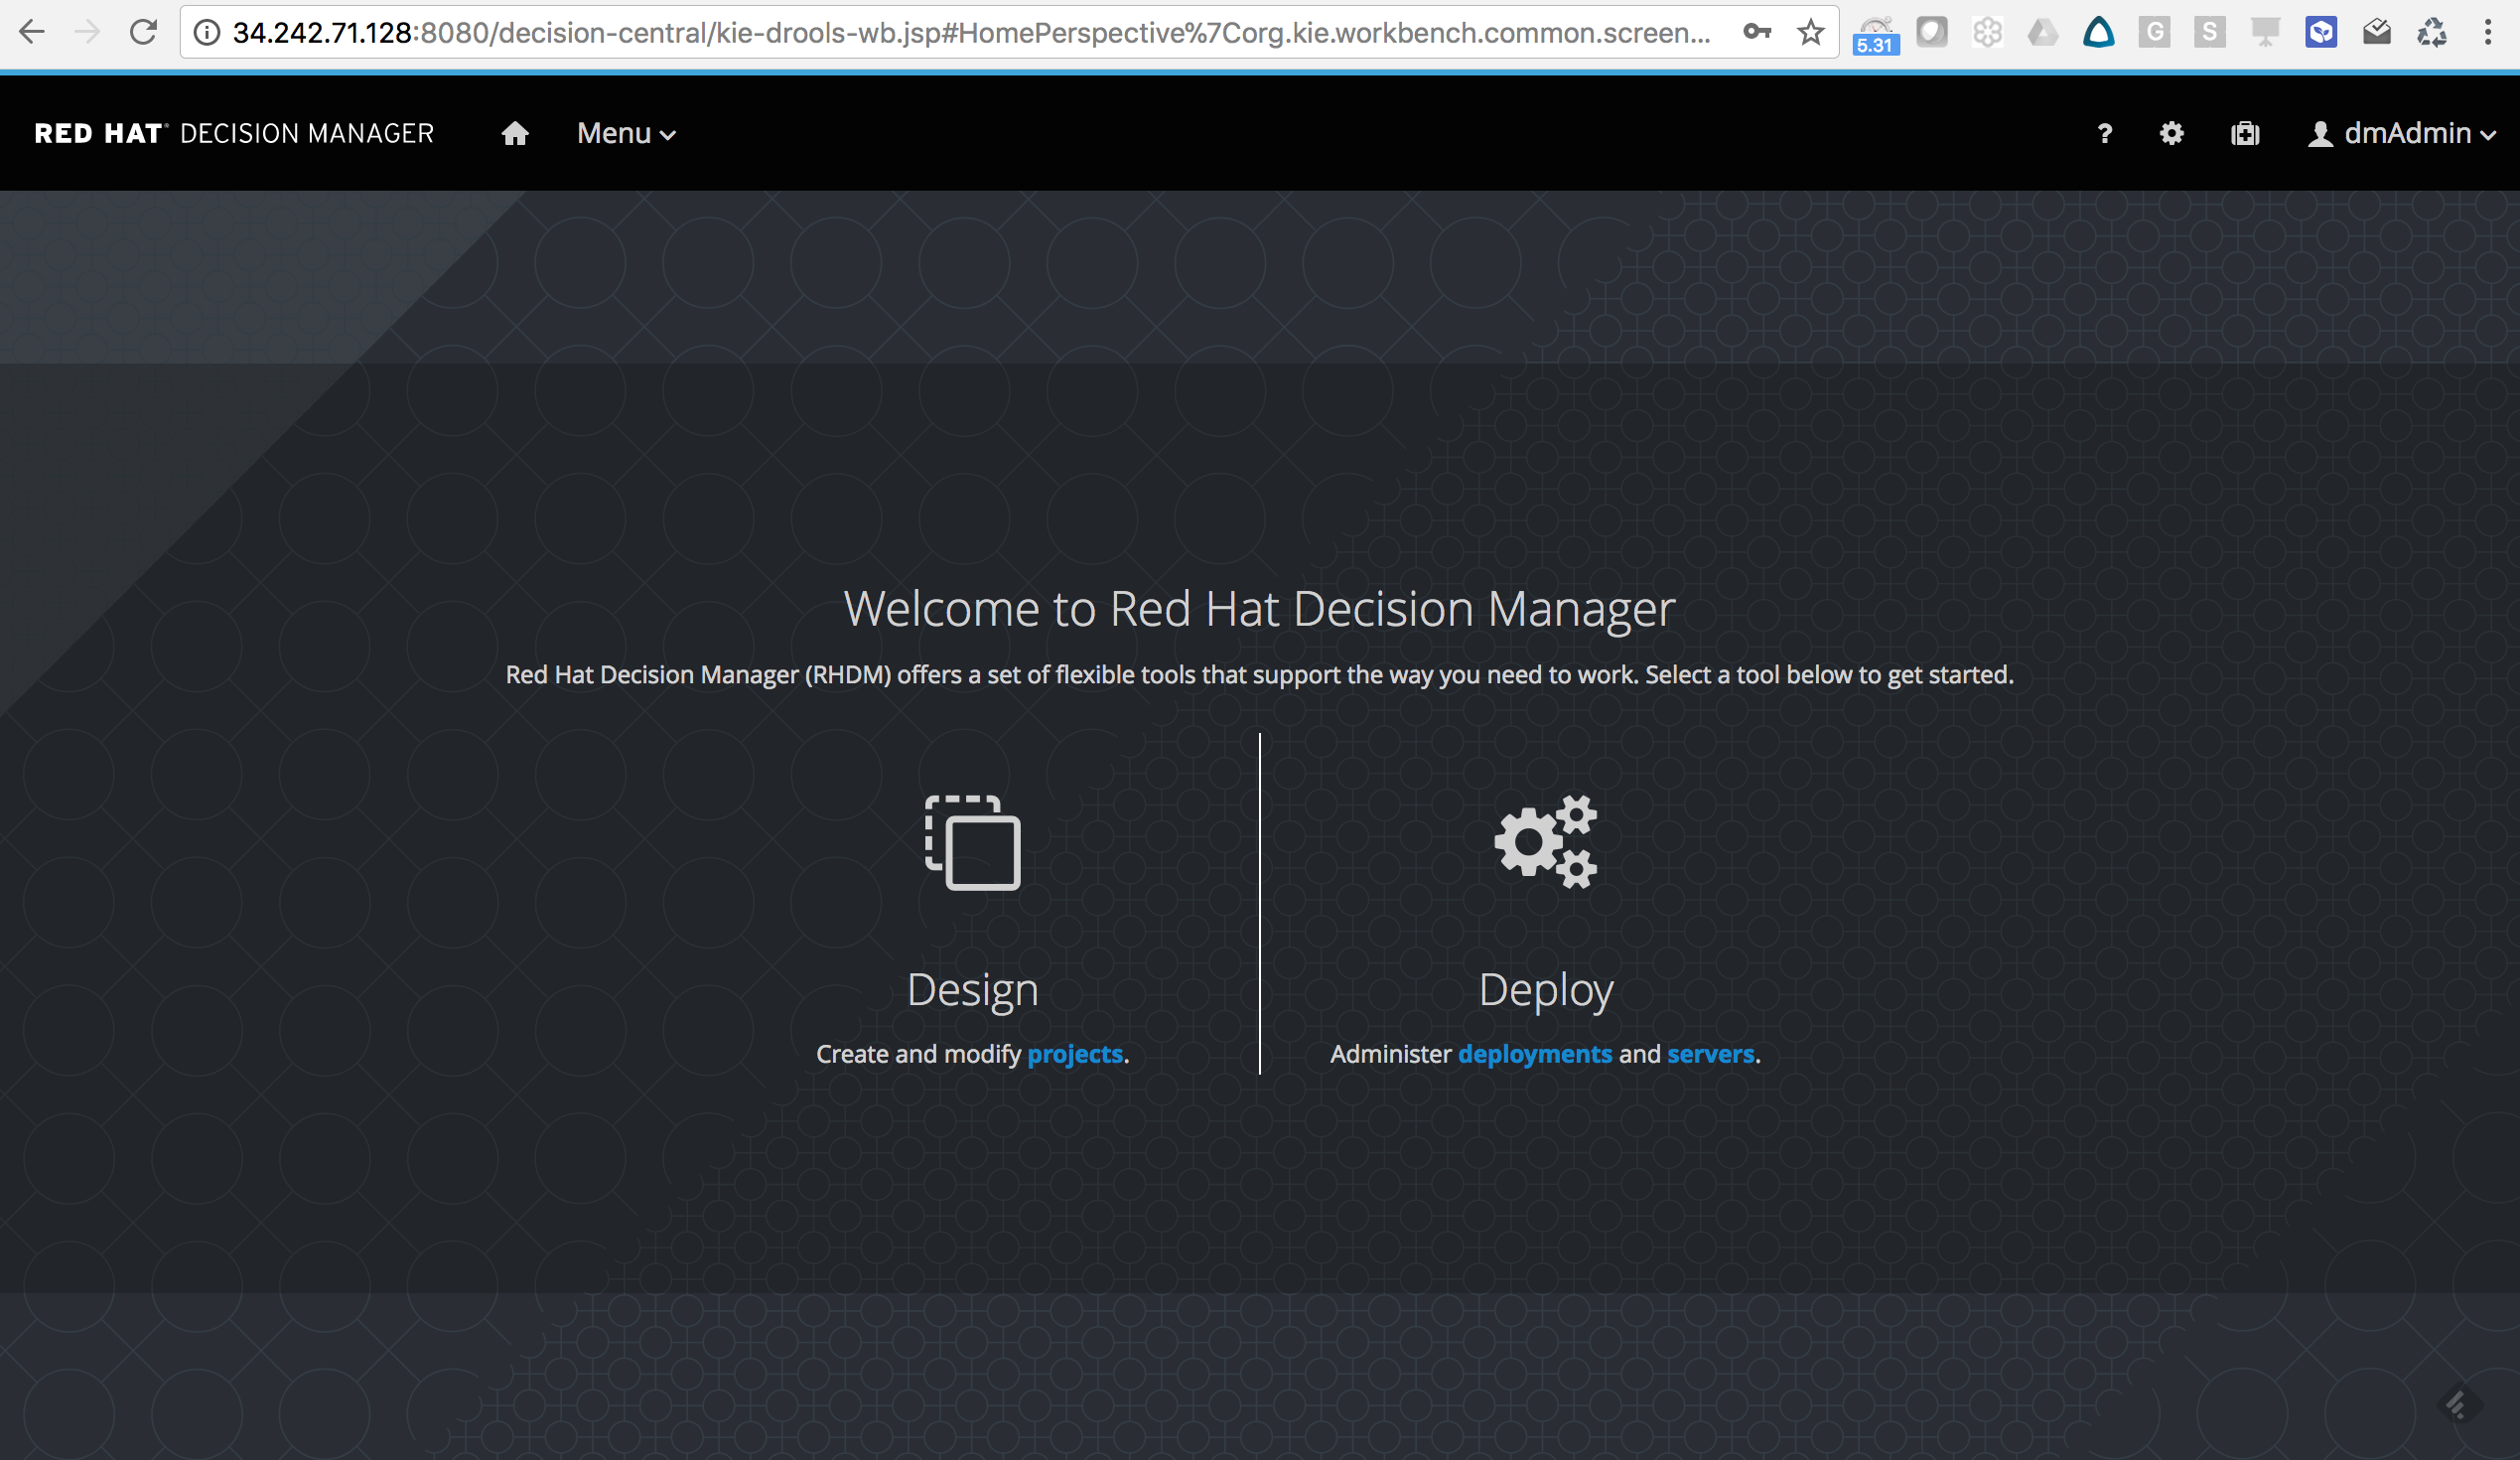 RedHat Decision Manager 7